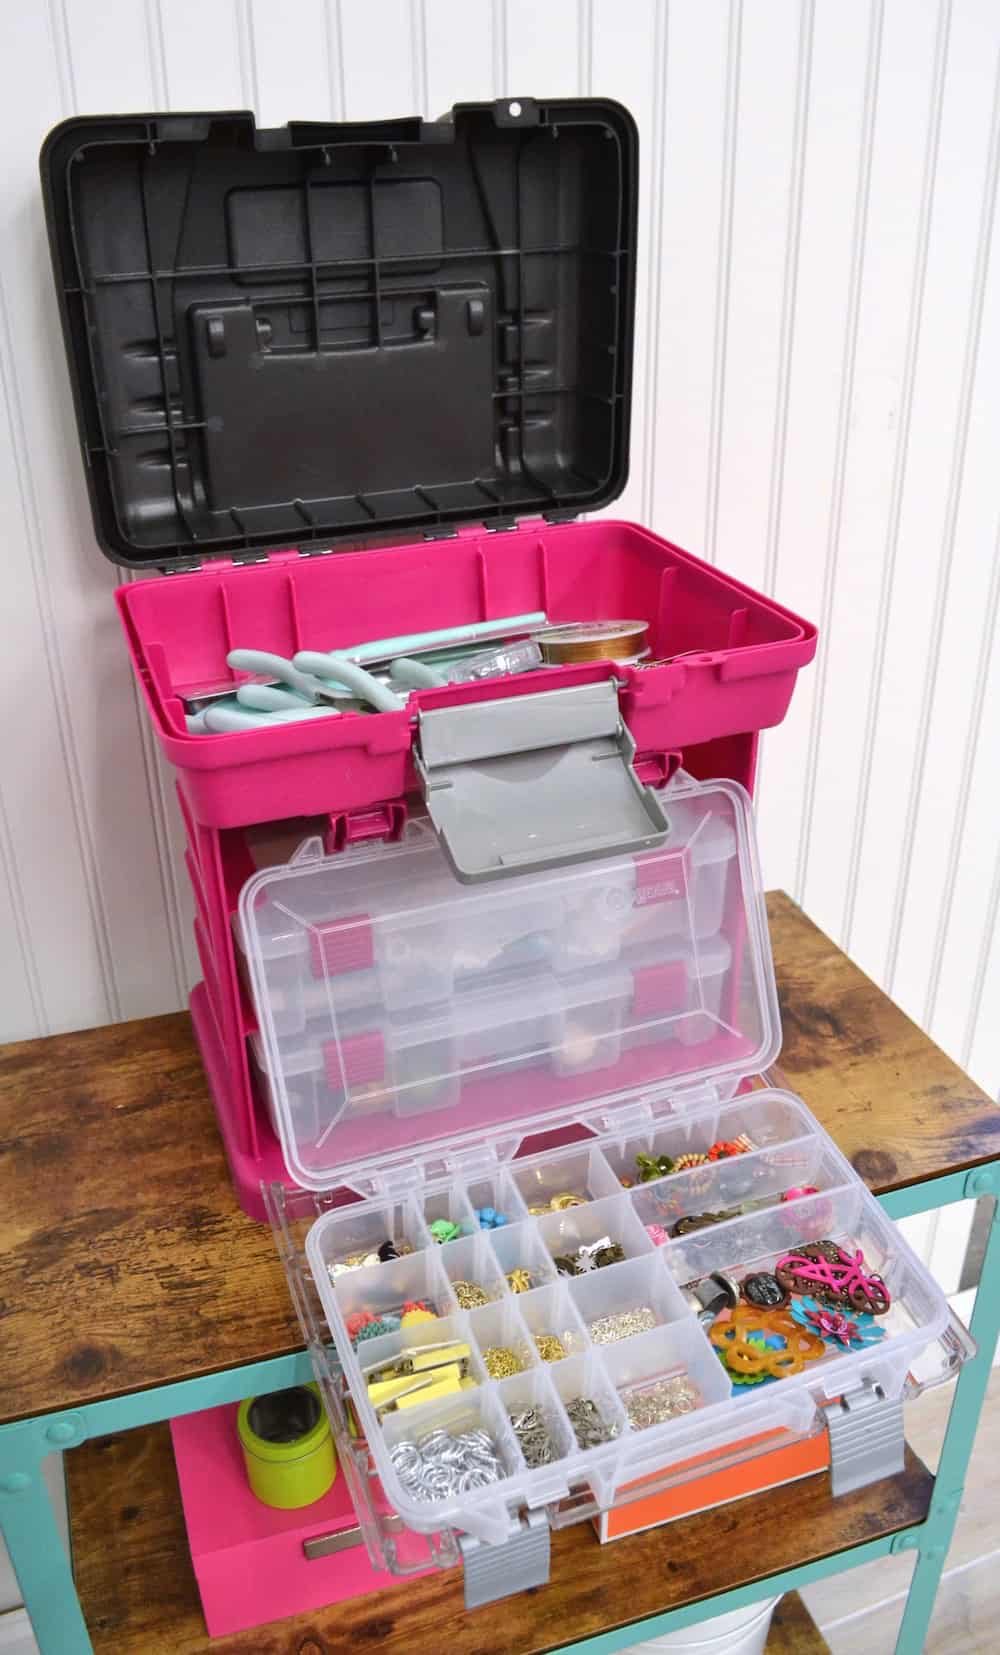 Large jewelry organizer with plastic containers and compartments